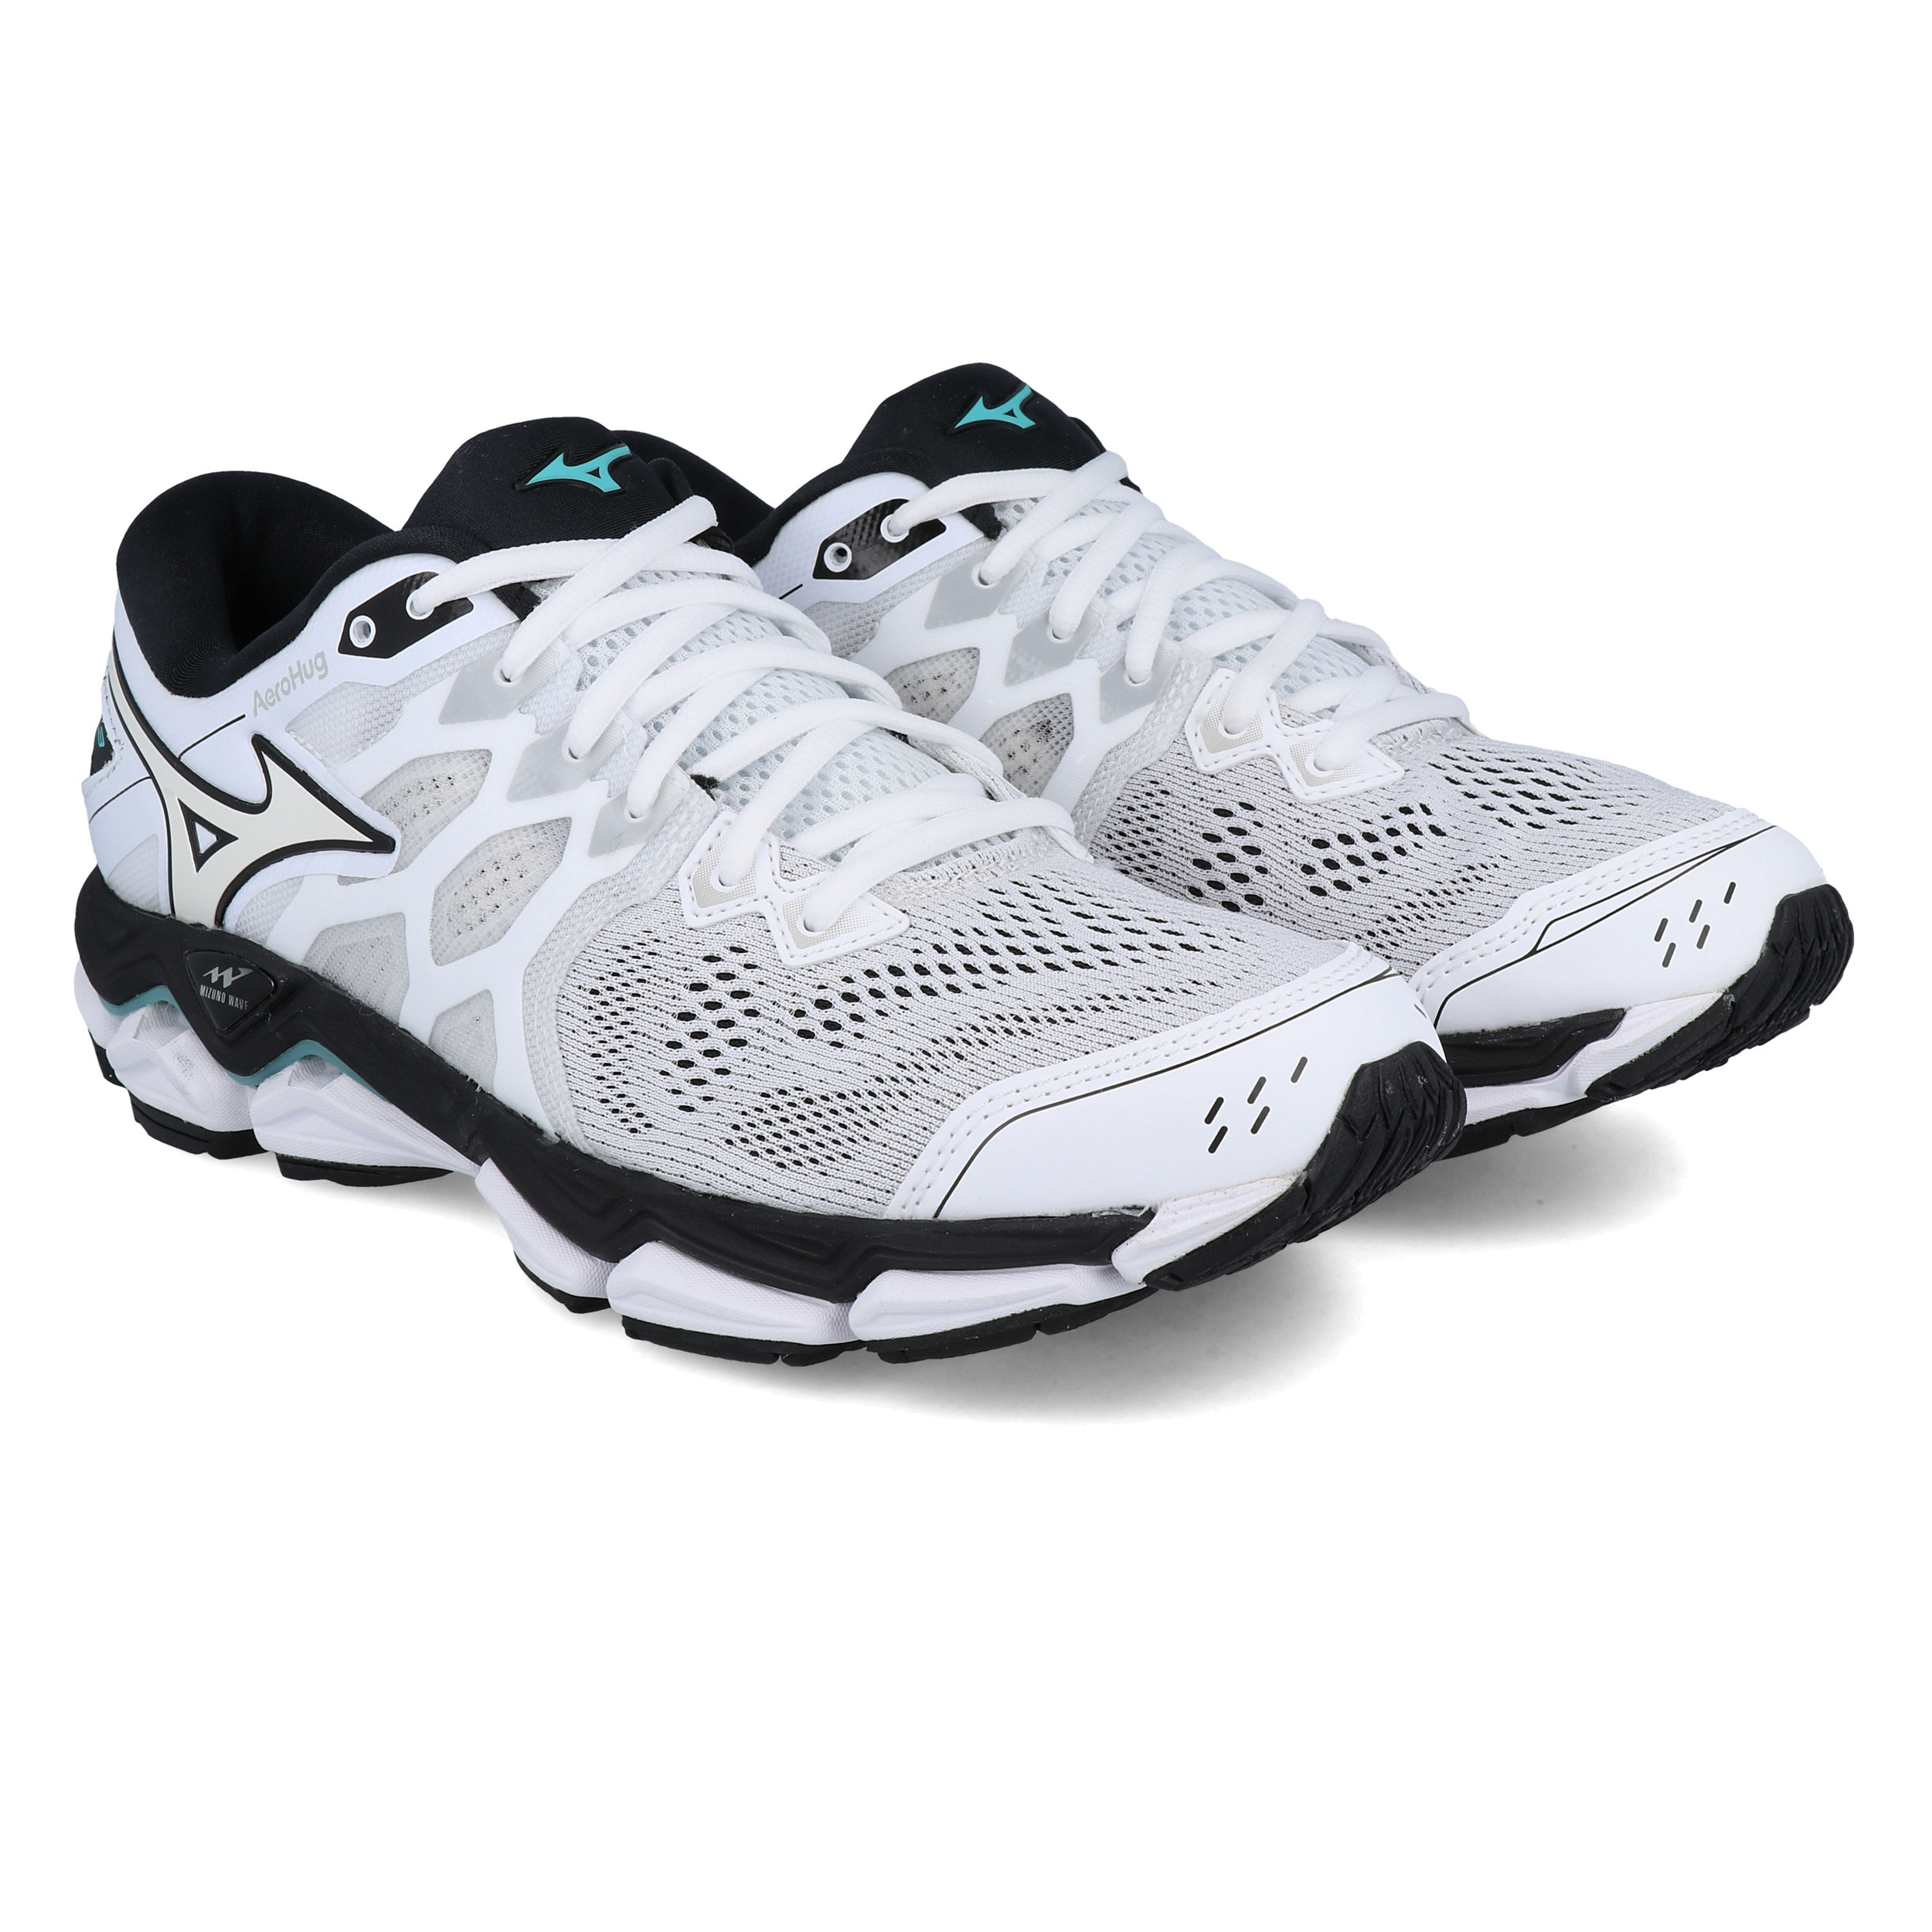 Mizuno Wave Horizon 3 Women's Running Shoes - AW19